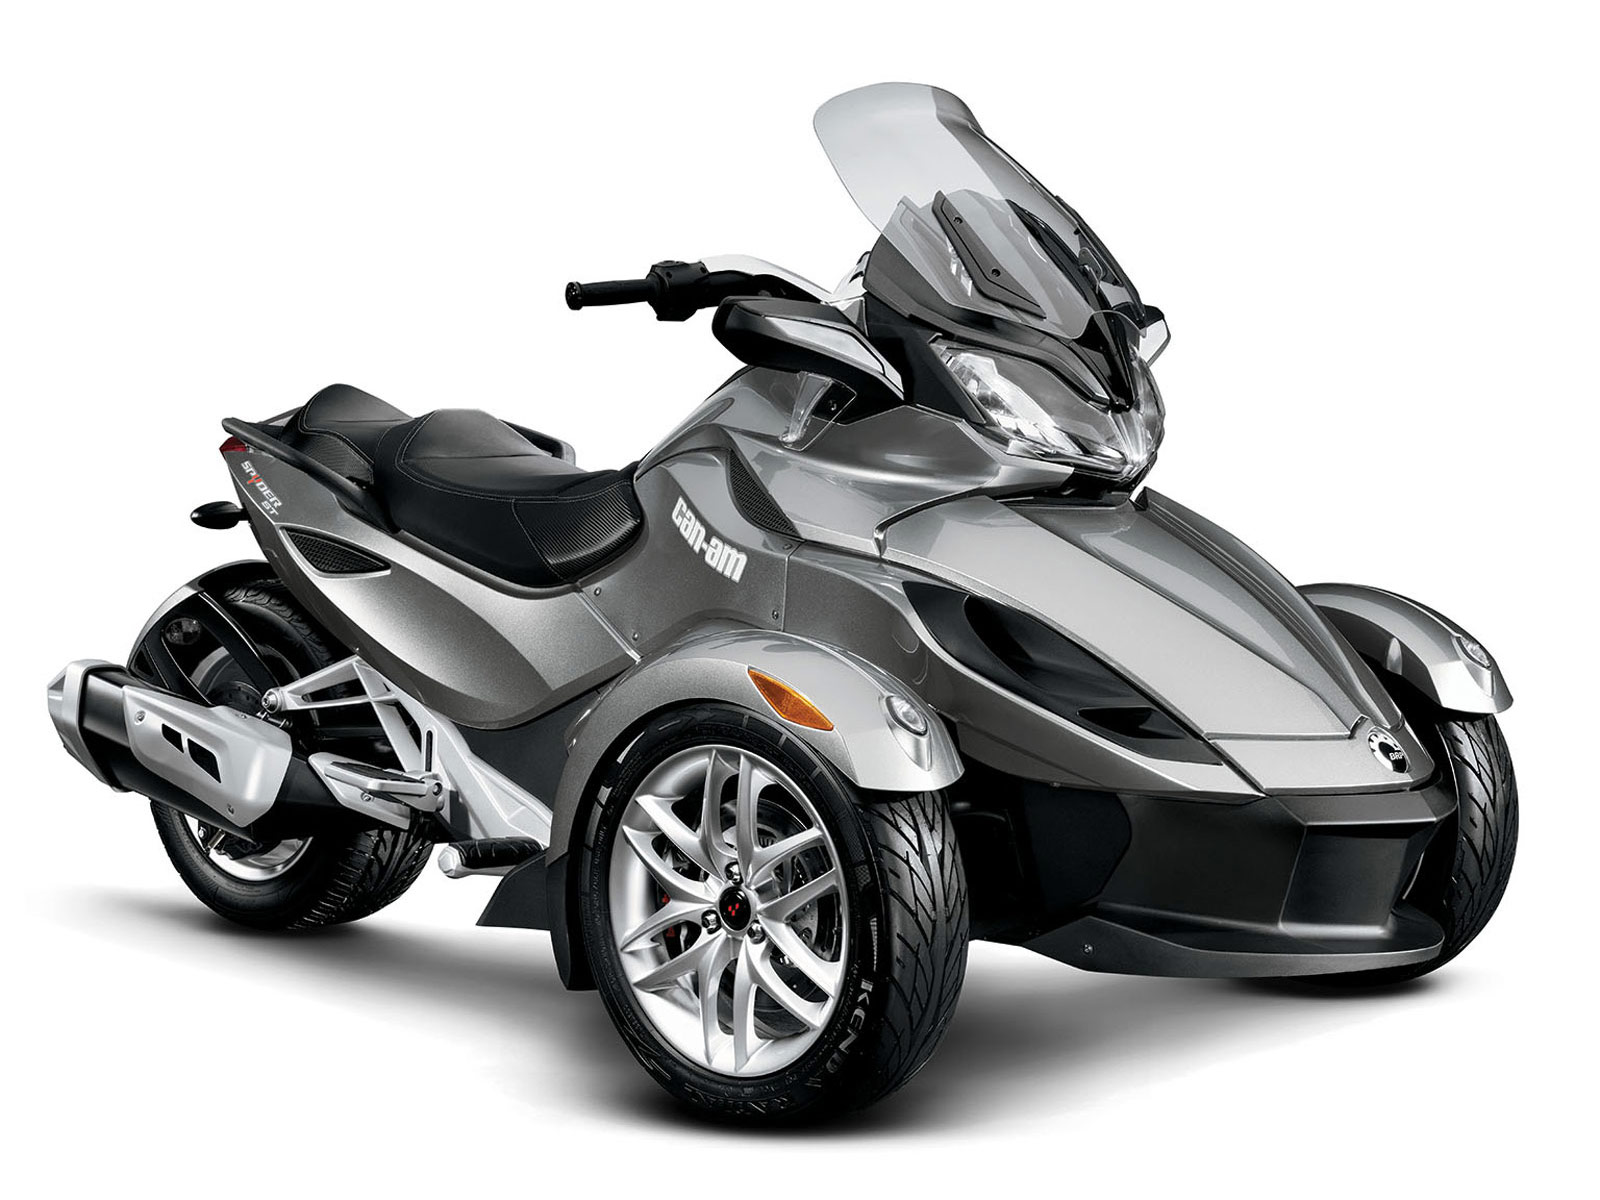 2013 Can Am Spyder St Usa Canadian Specifications HD Wallpapers Download free images and photos [musssic.tk]